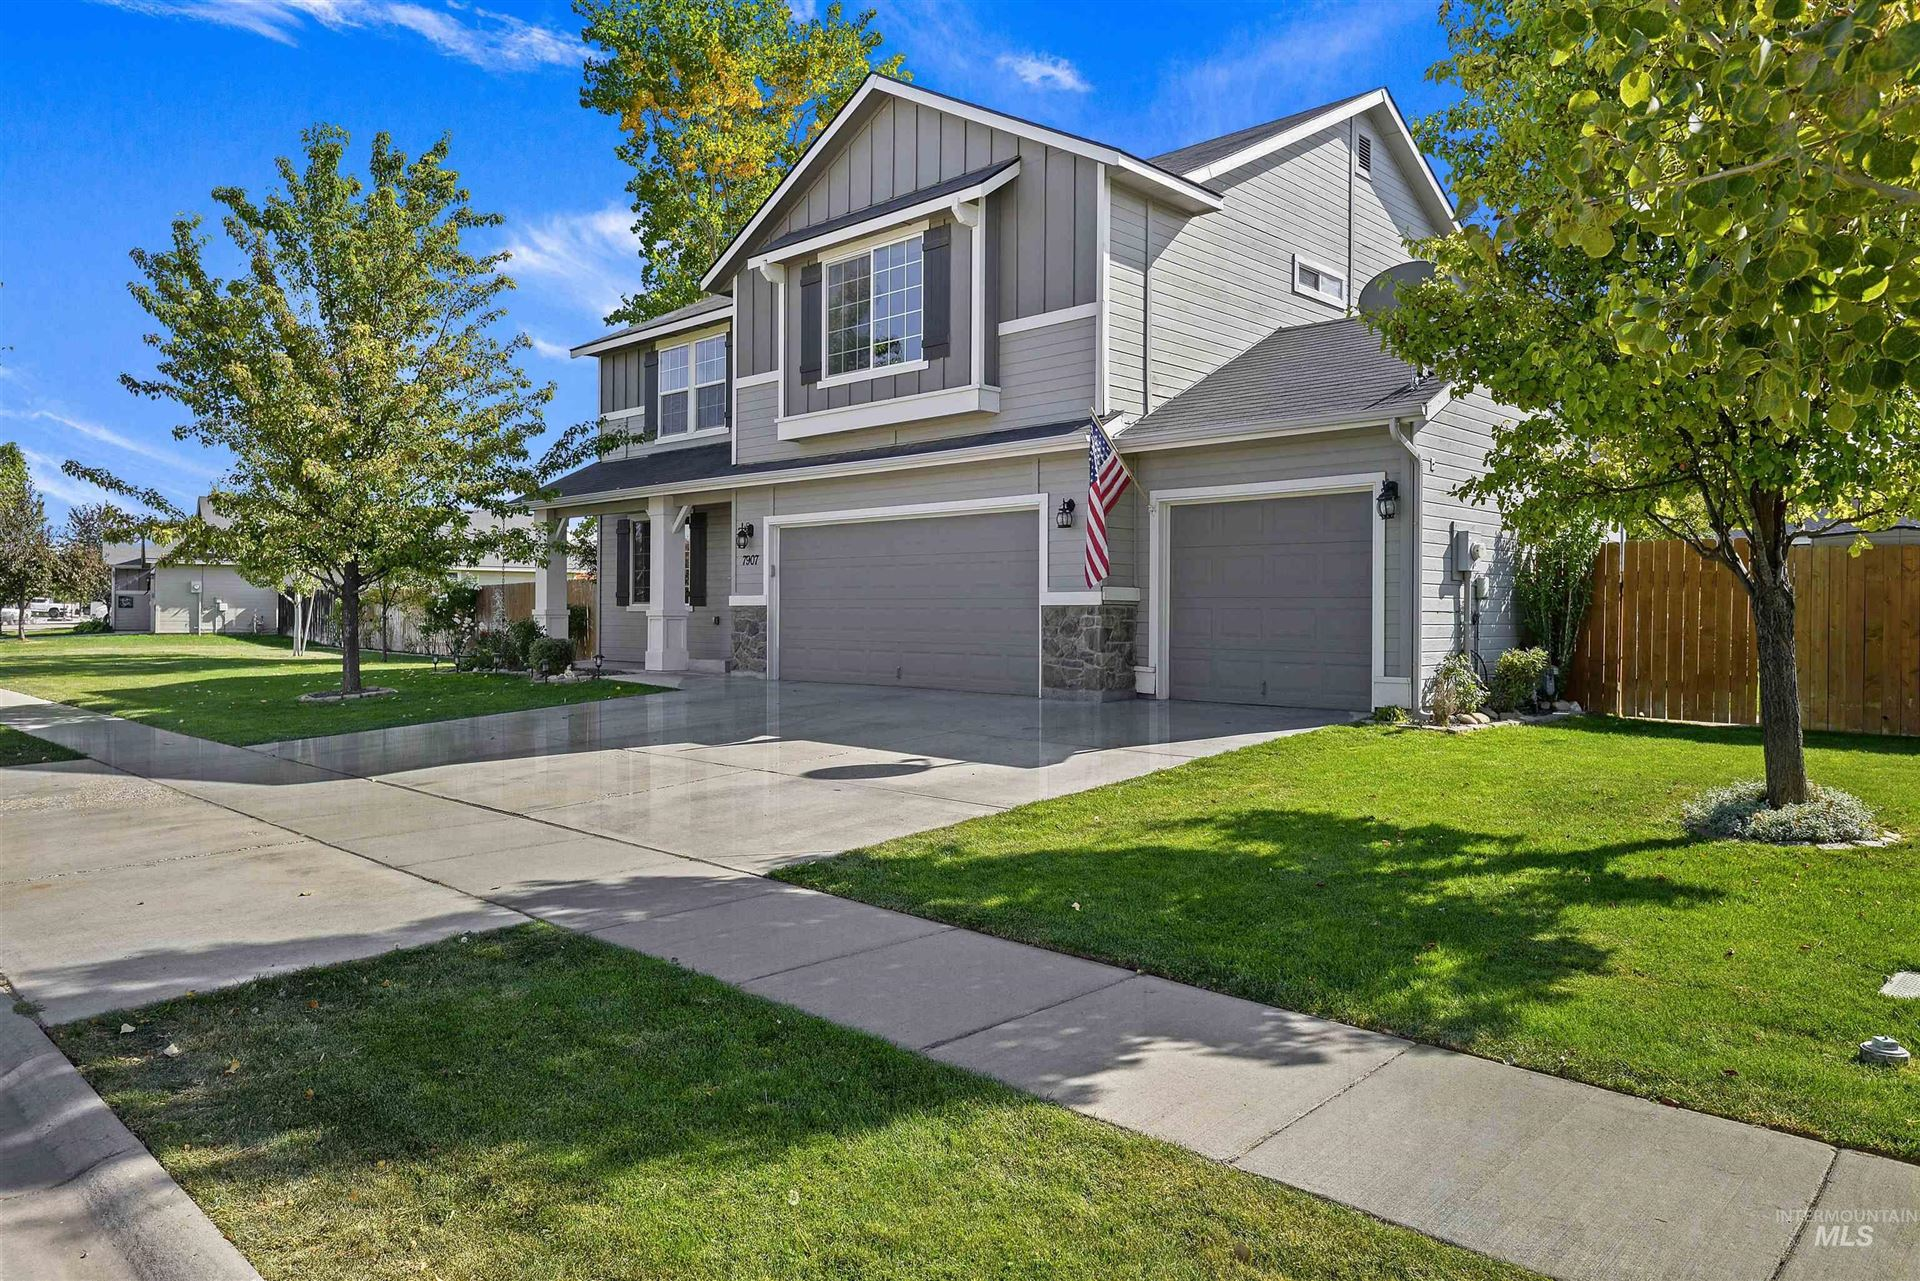 7907 E Toussand Dr., Nampa, ID 83687 - MLS#: 98821736